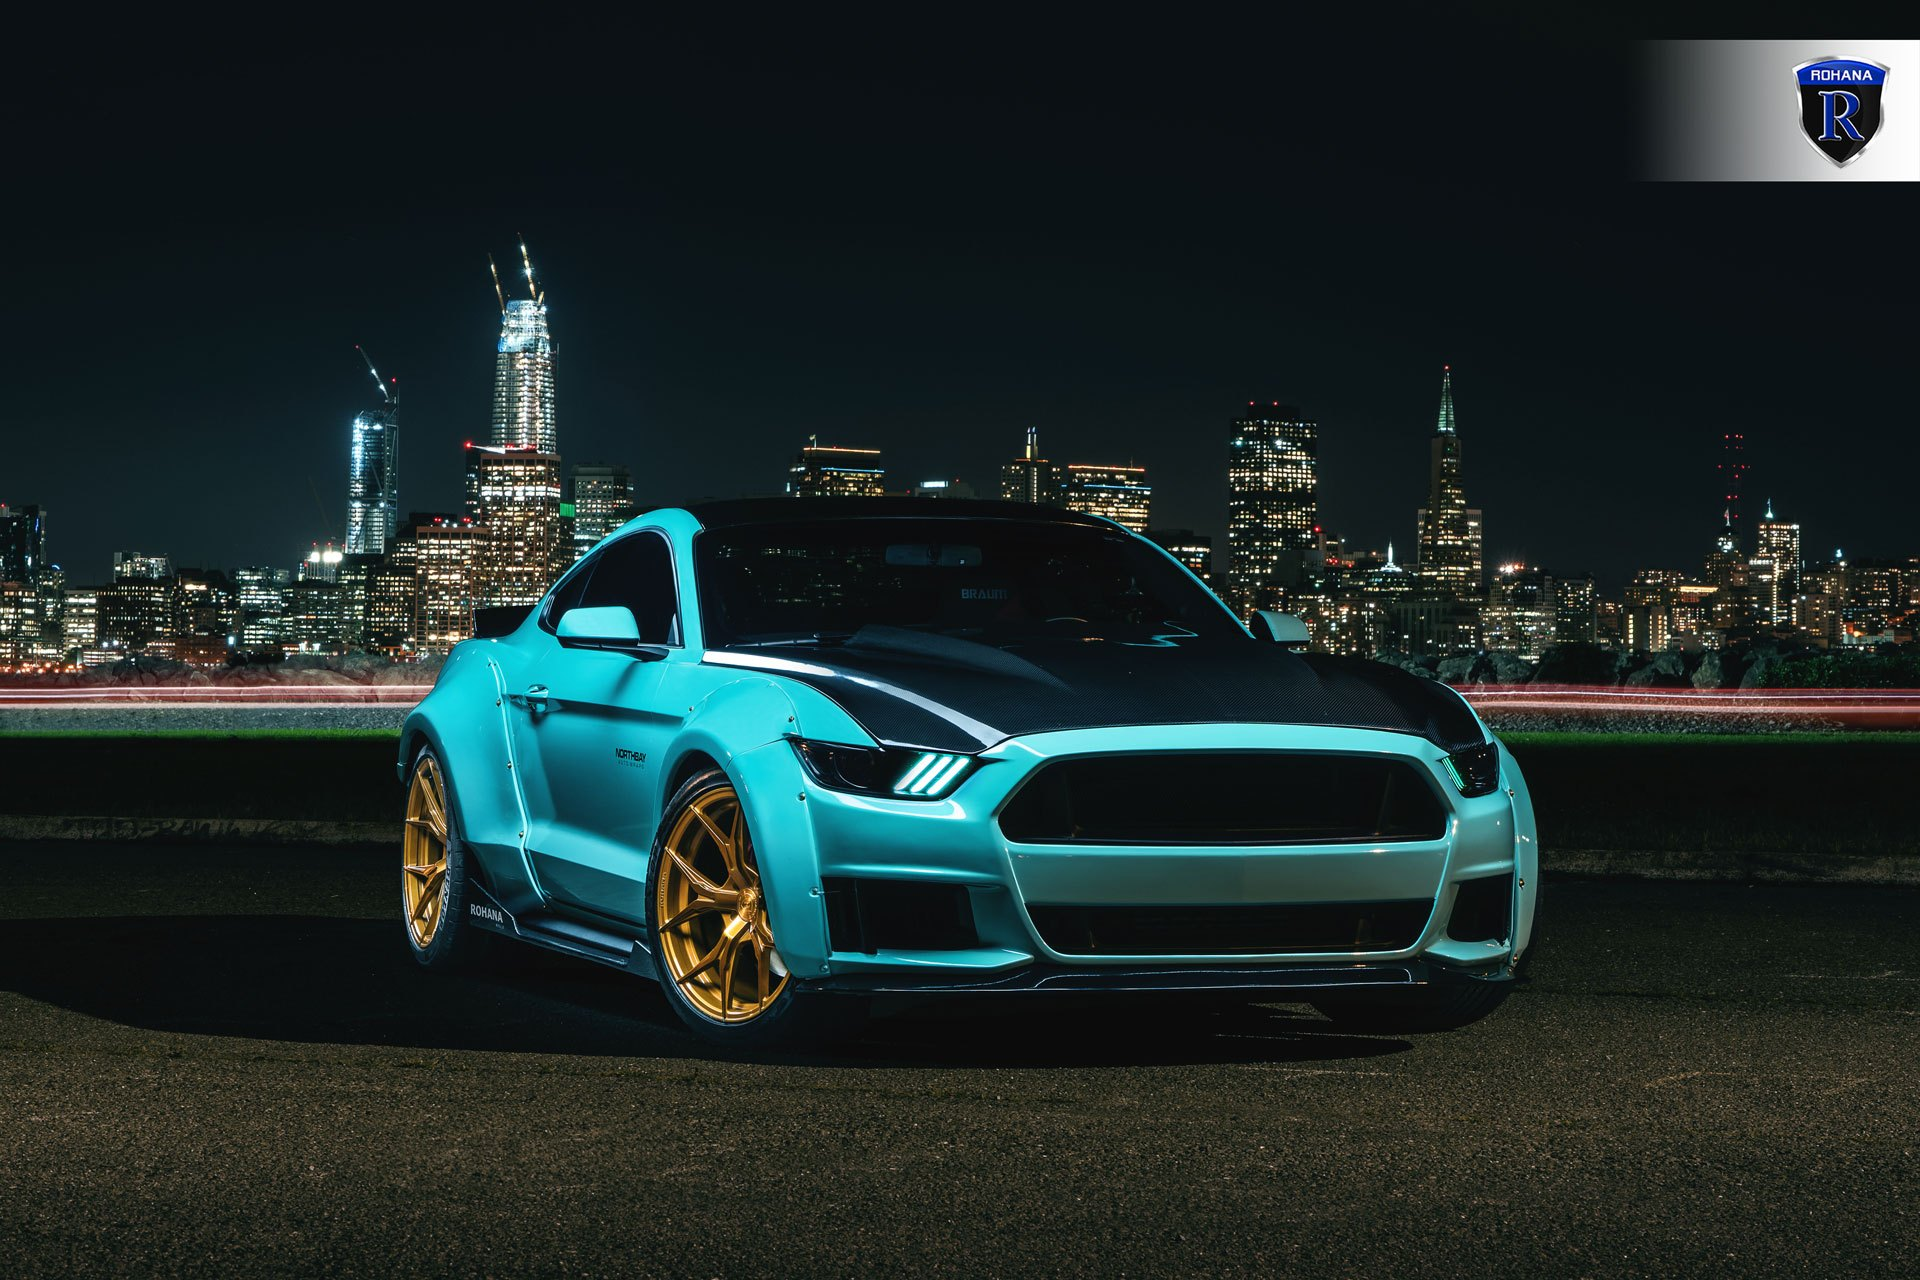 Fresh mint ford mustang s550 with a wide body kit photo by rohana wheels